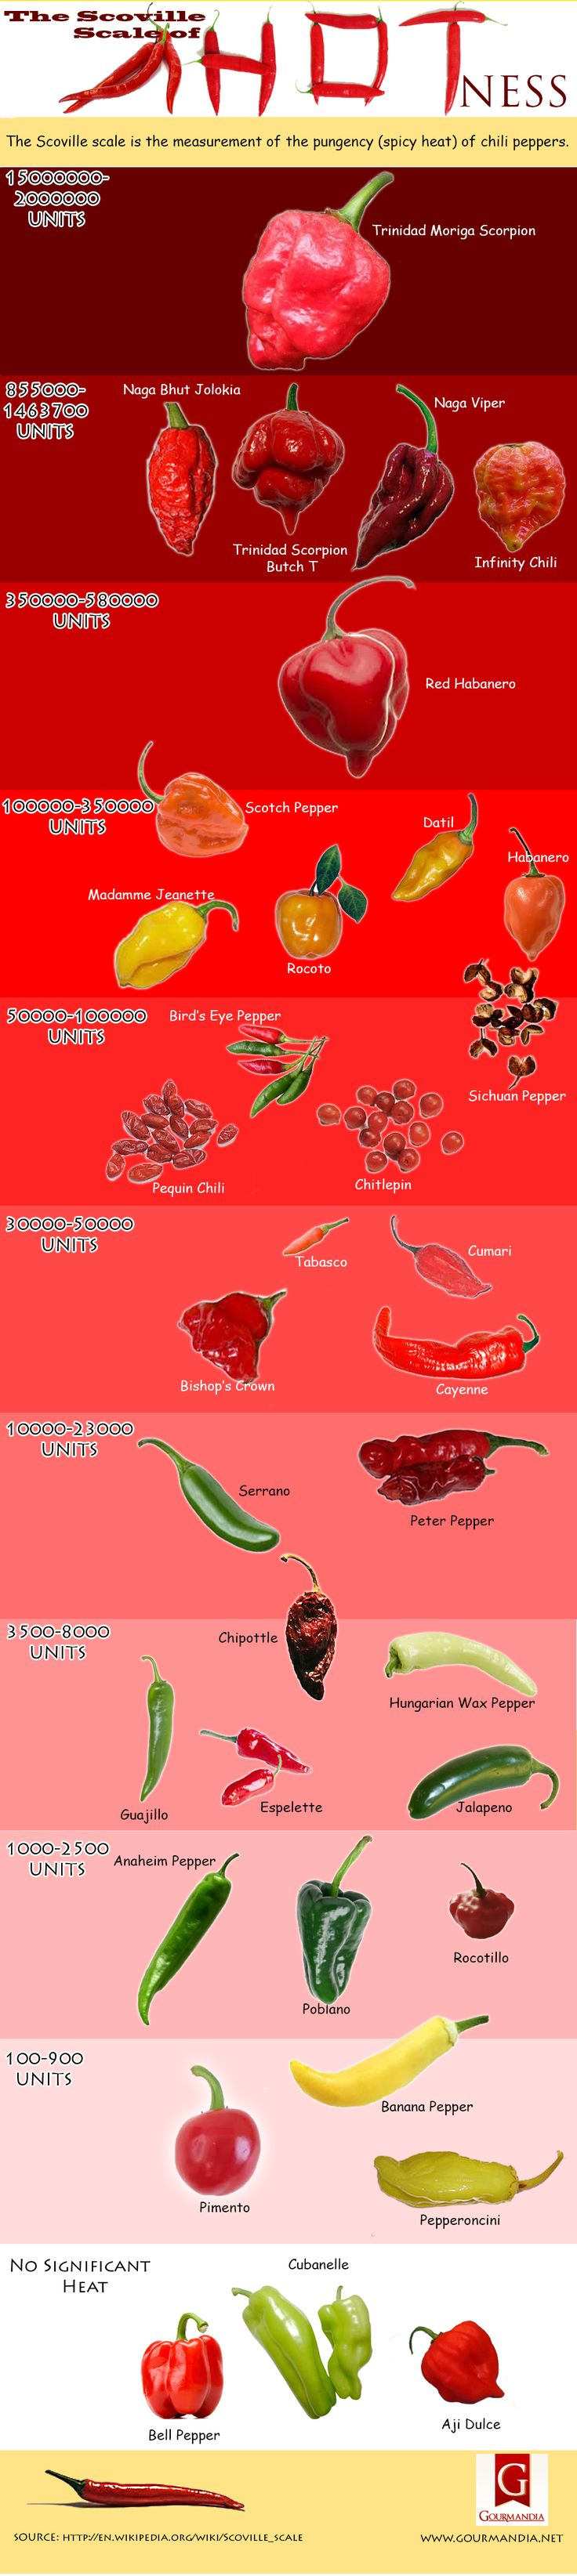 Scoville Scale Hotness